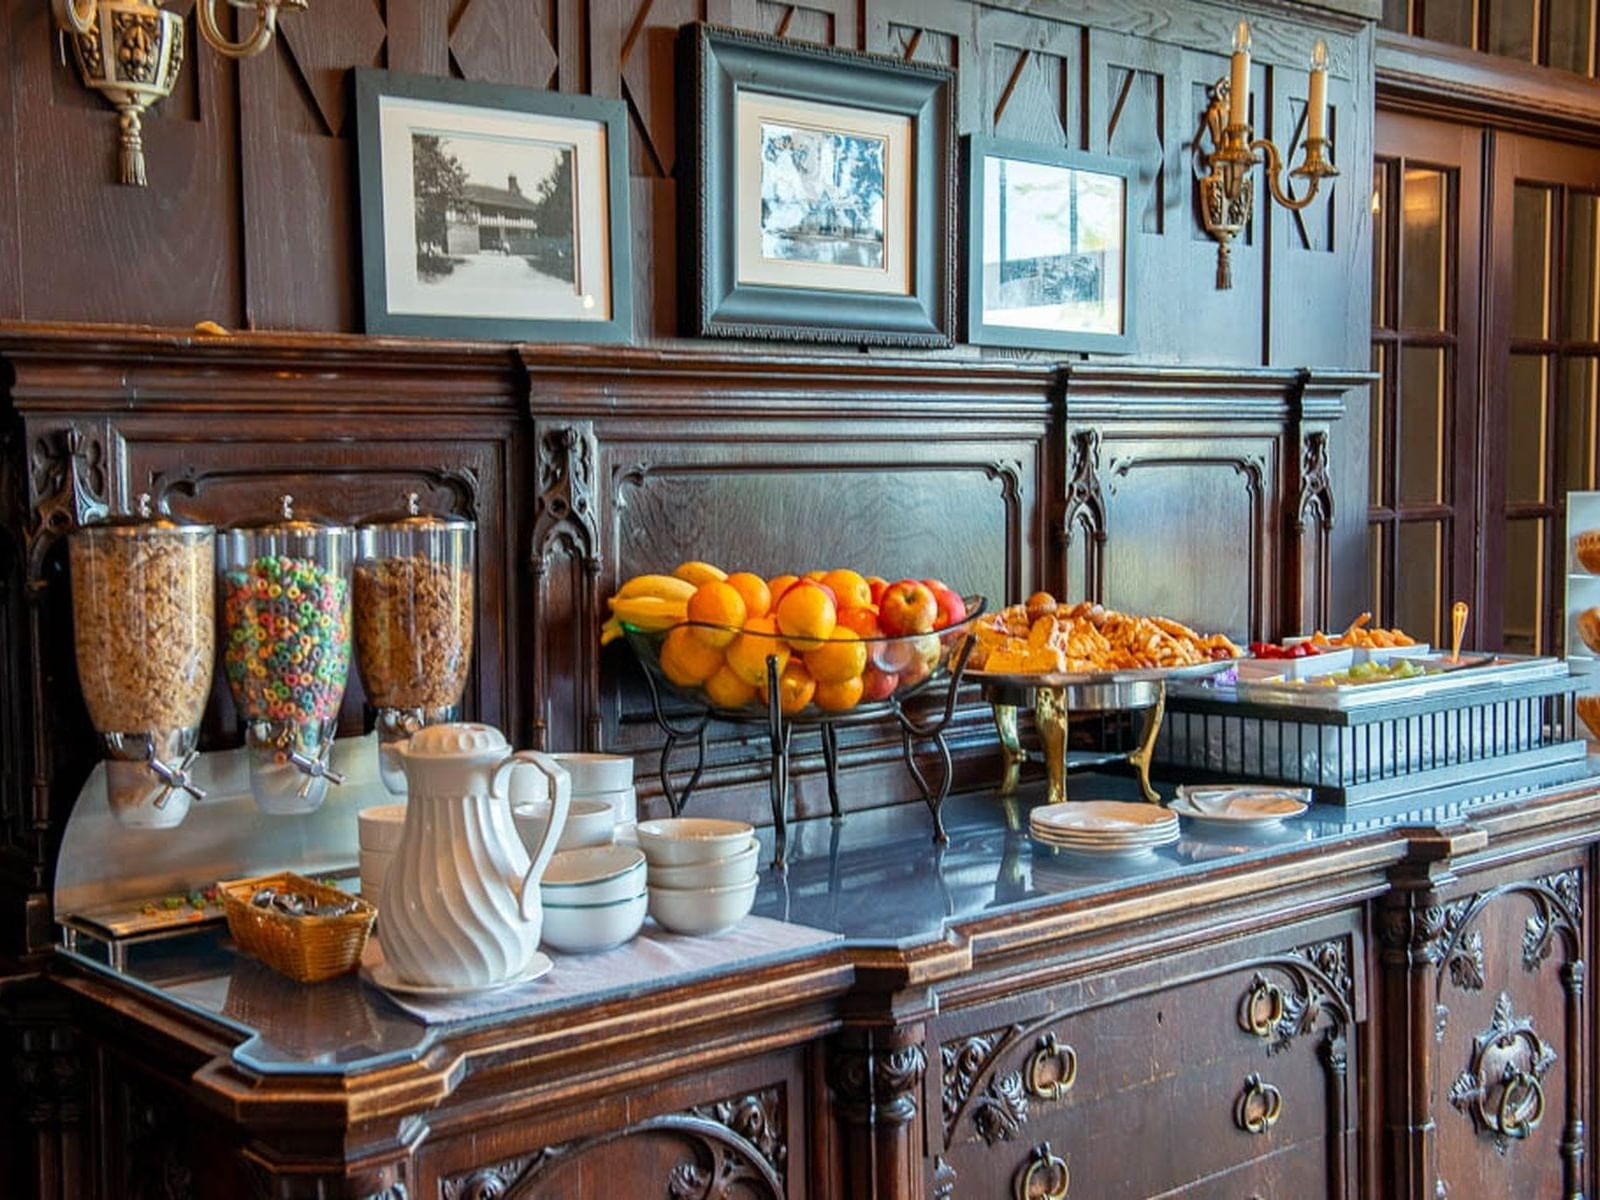 continental breakfast display with cereal and fruit